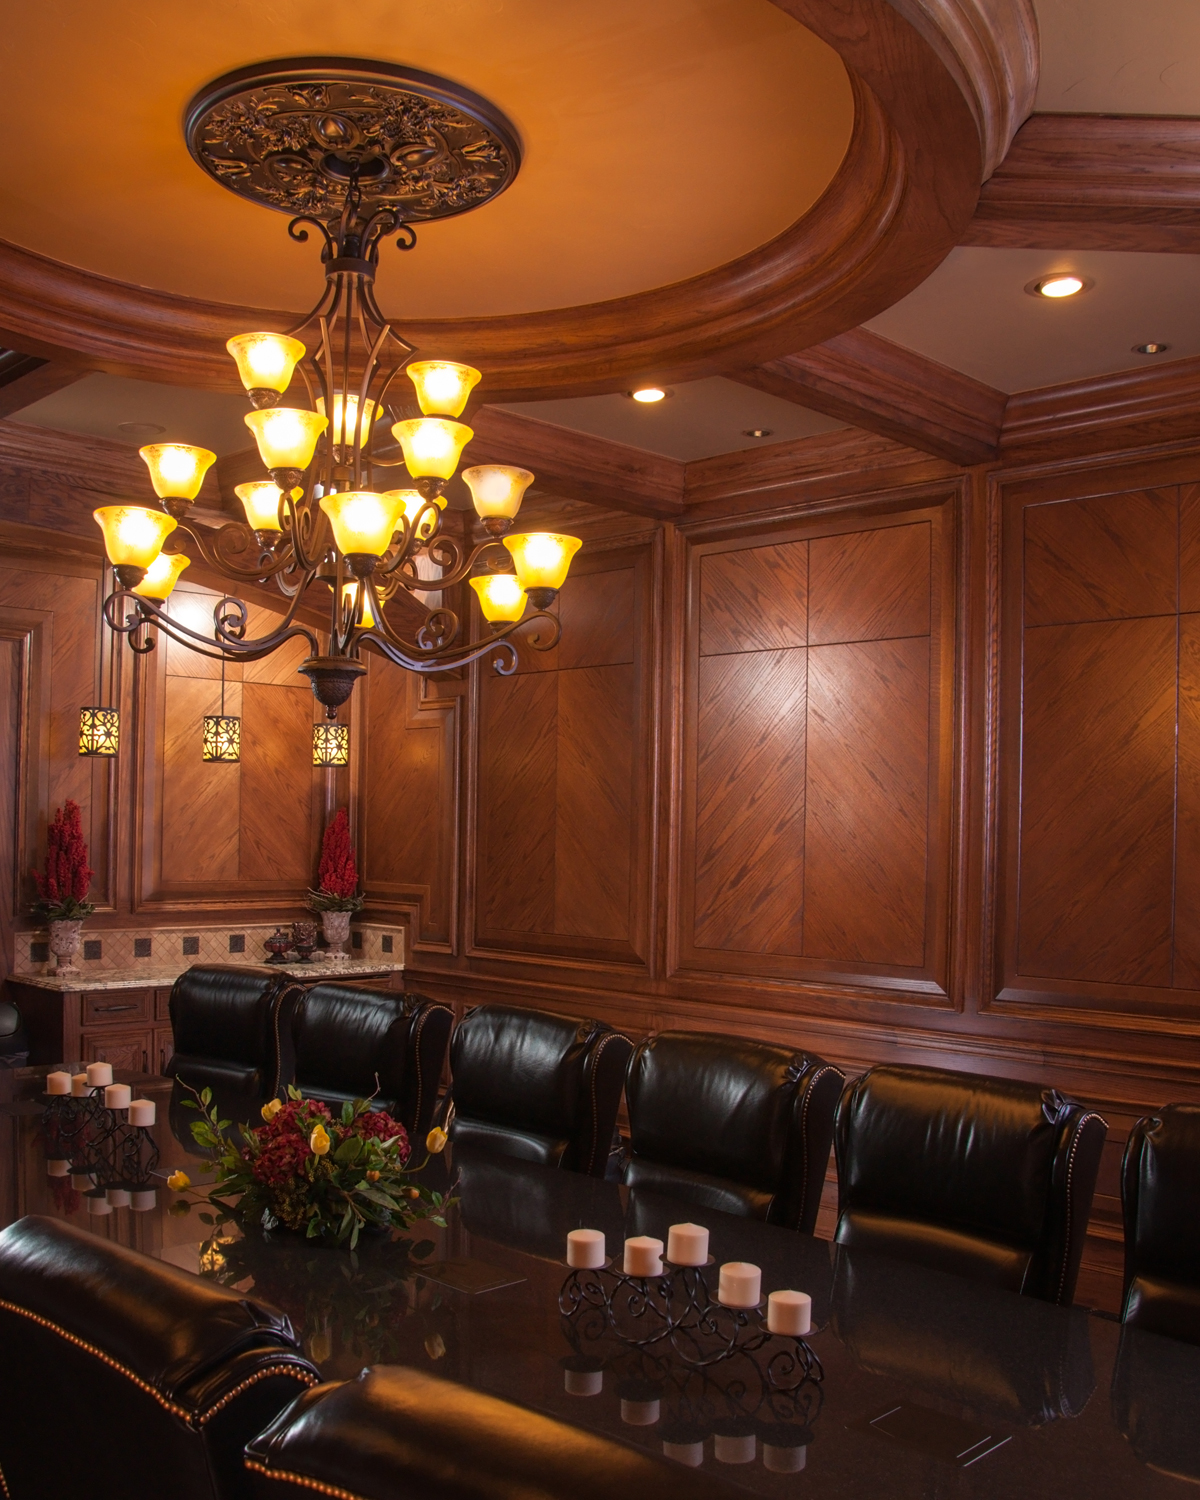 St. Luke's Board Room